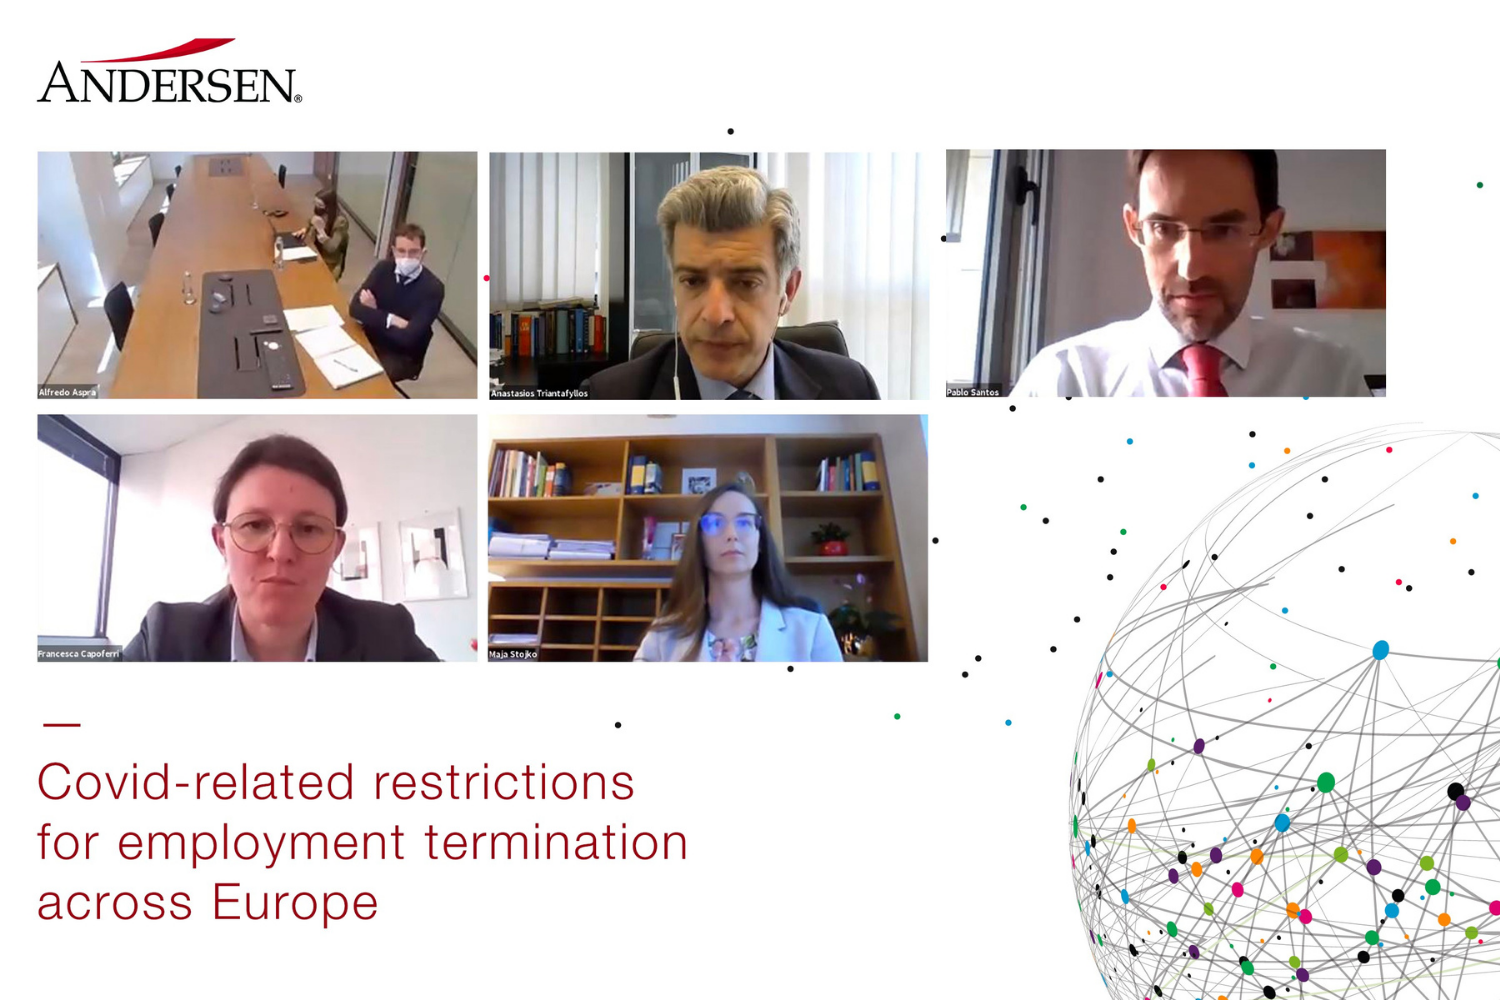 EMPLOYMENT WEBINAR | Covid-related restrictions for employment termination across Europe